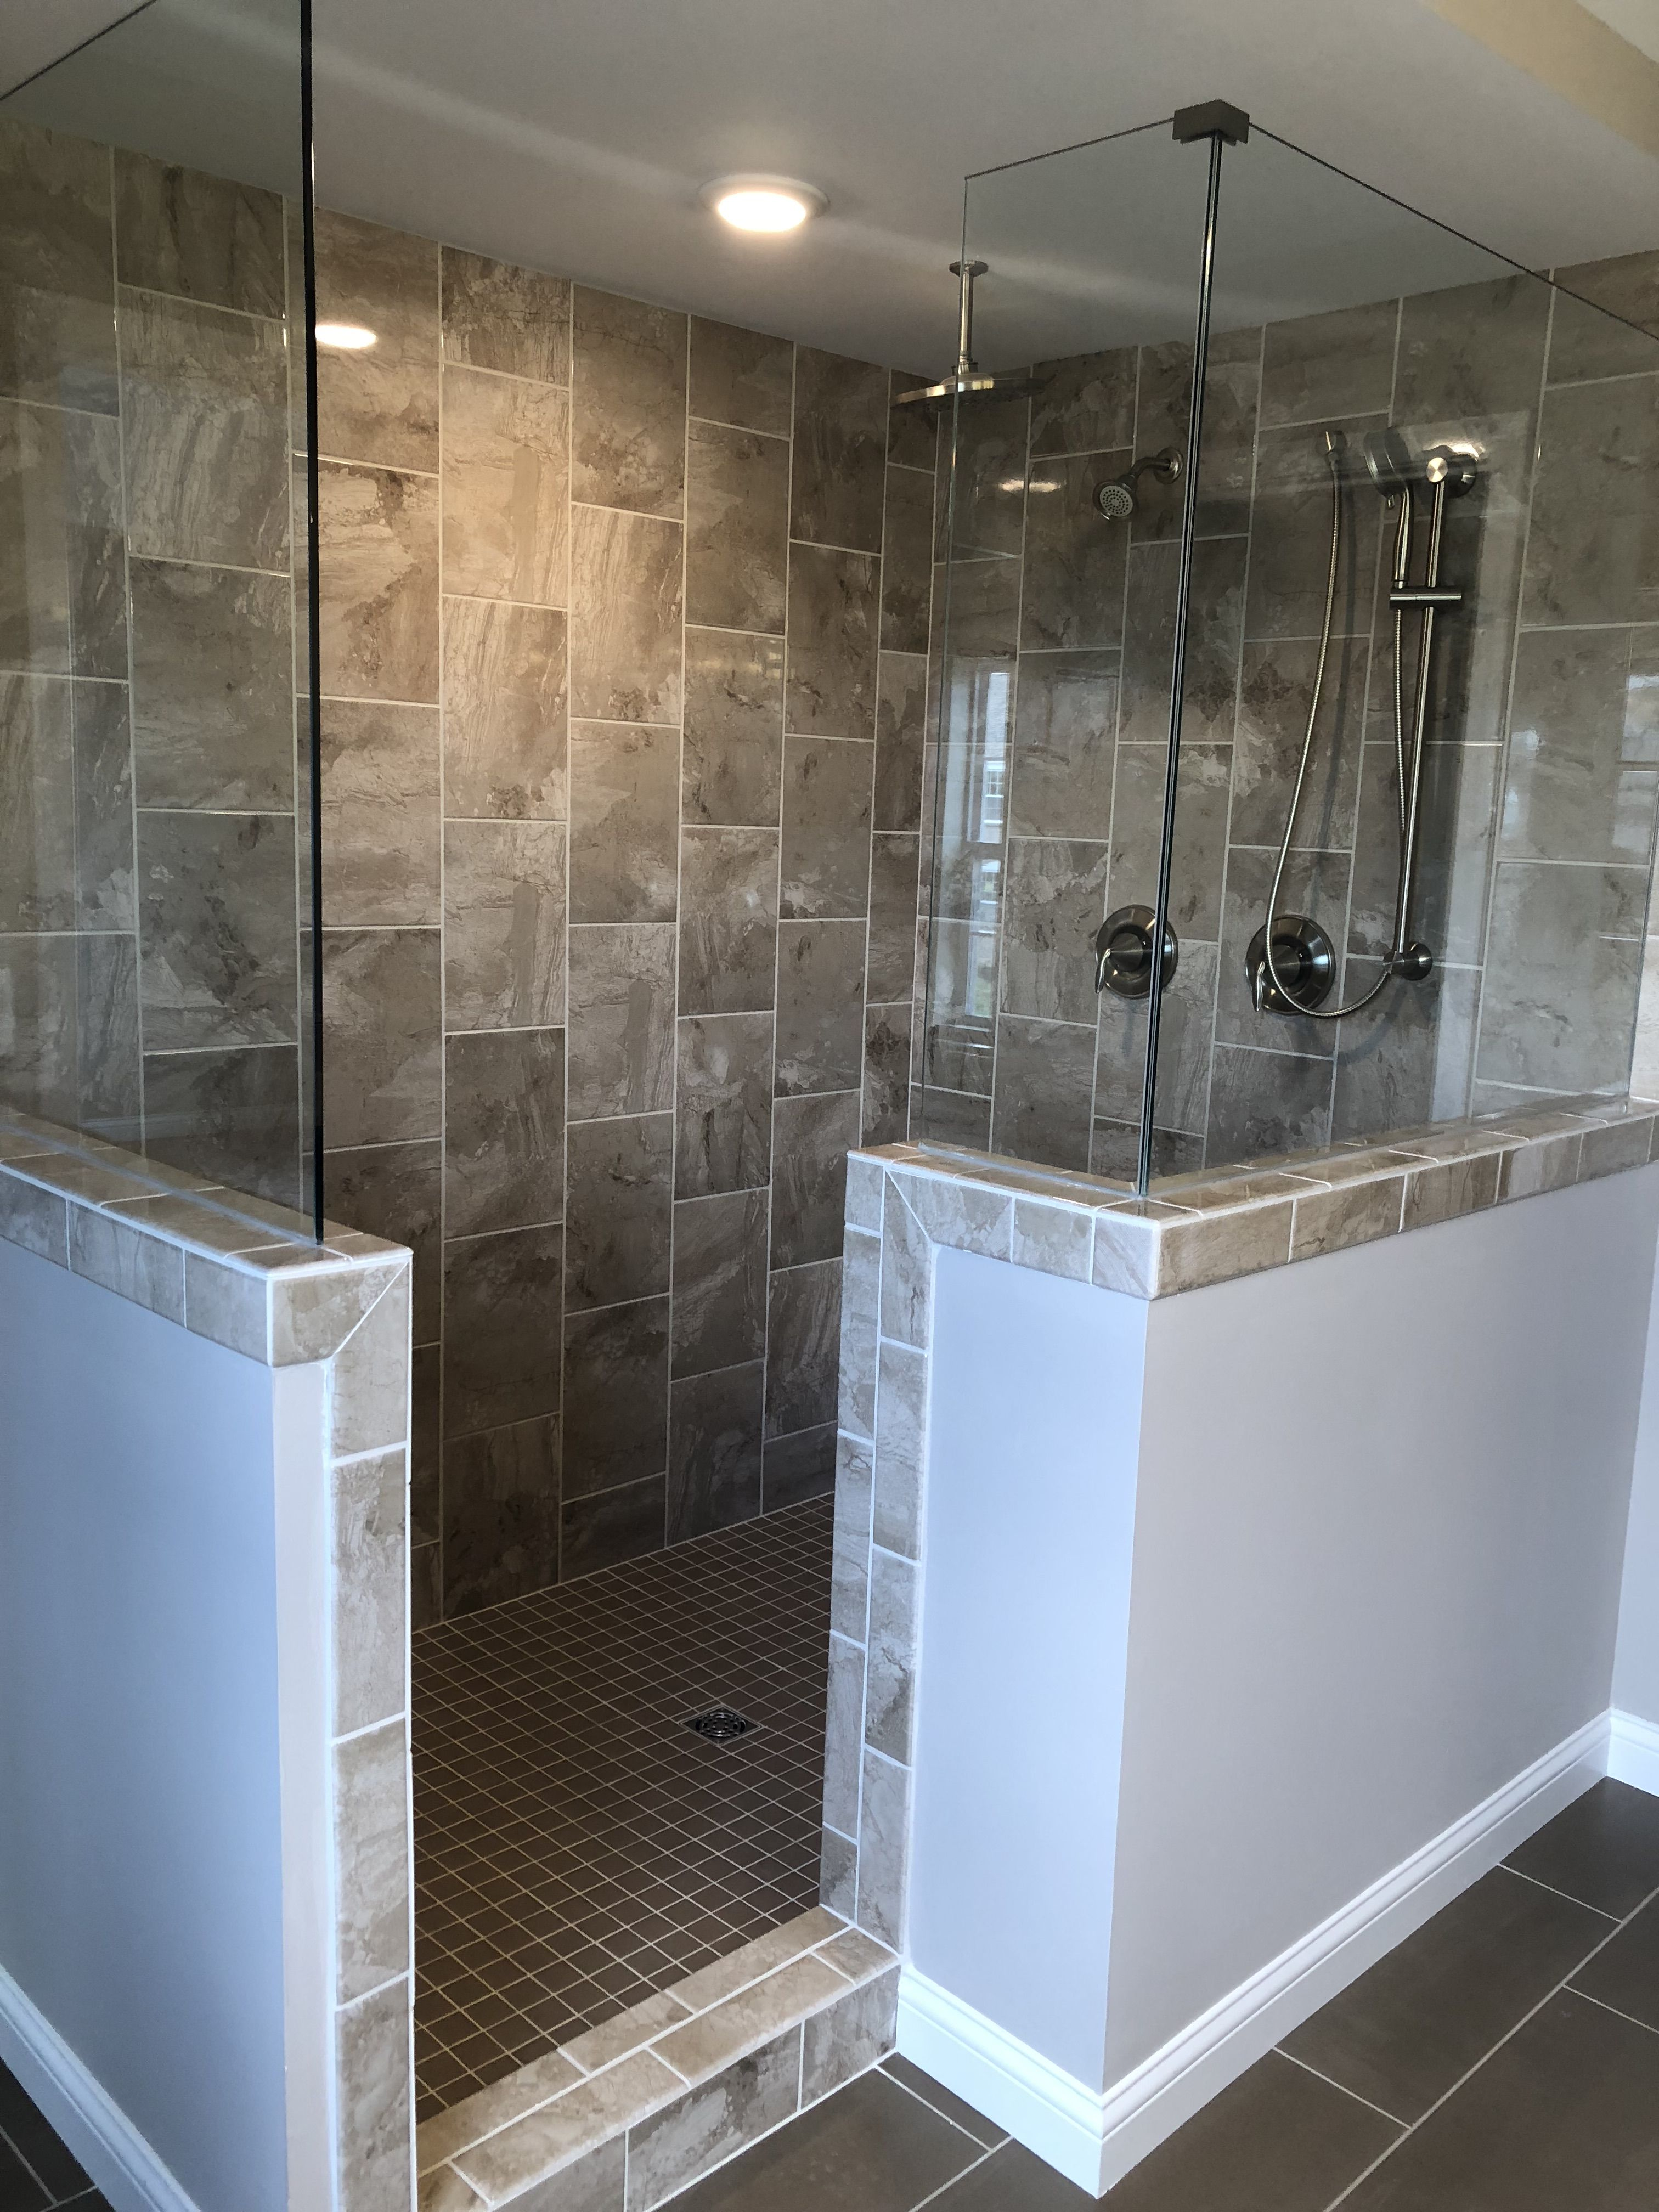 Marble Falls 10x14 Highland Beige Wall Tile Installed Vertical Brick Joint In A Garden Shower Bath Tiles Shower Tile Garden Shower